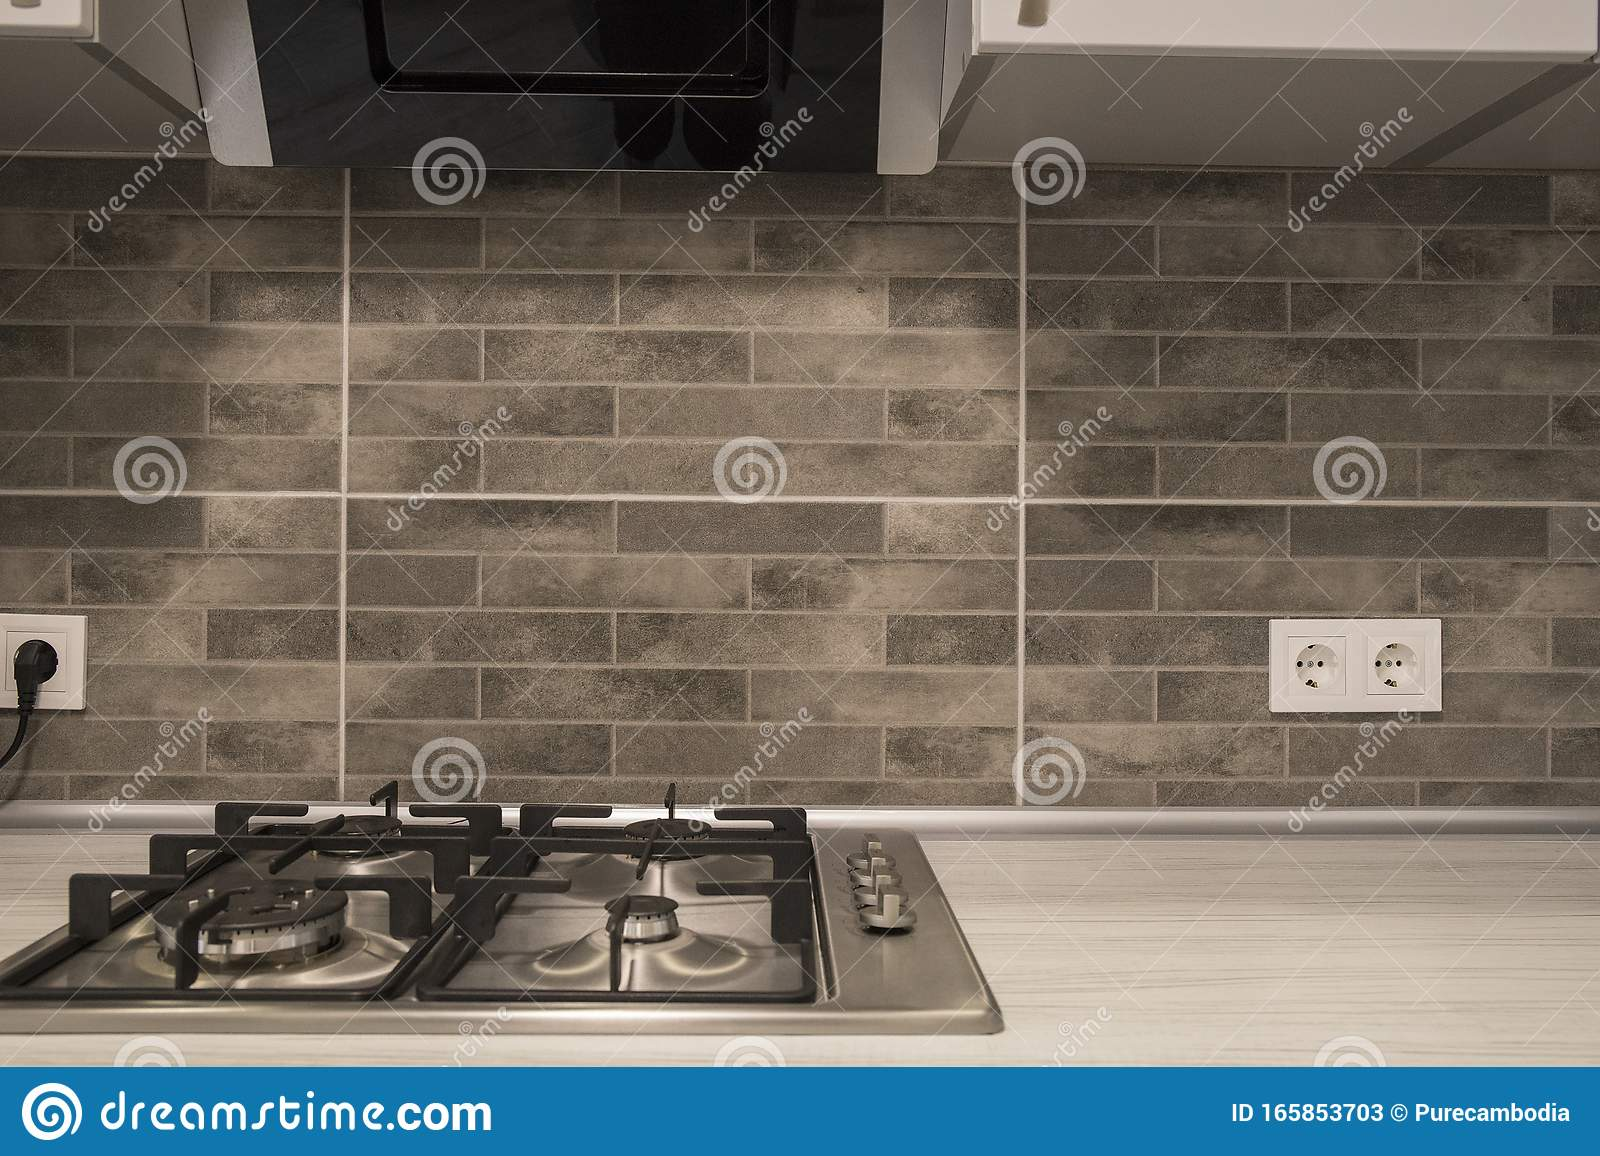 - Modern Kitchen Interior With Stainless Steel Gas Cook-top And Grey